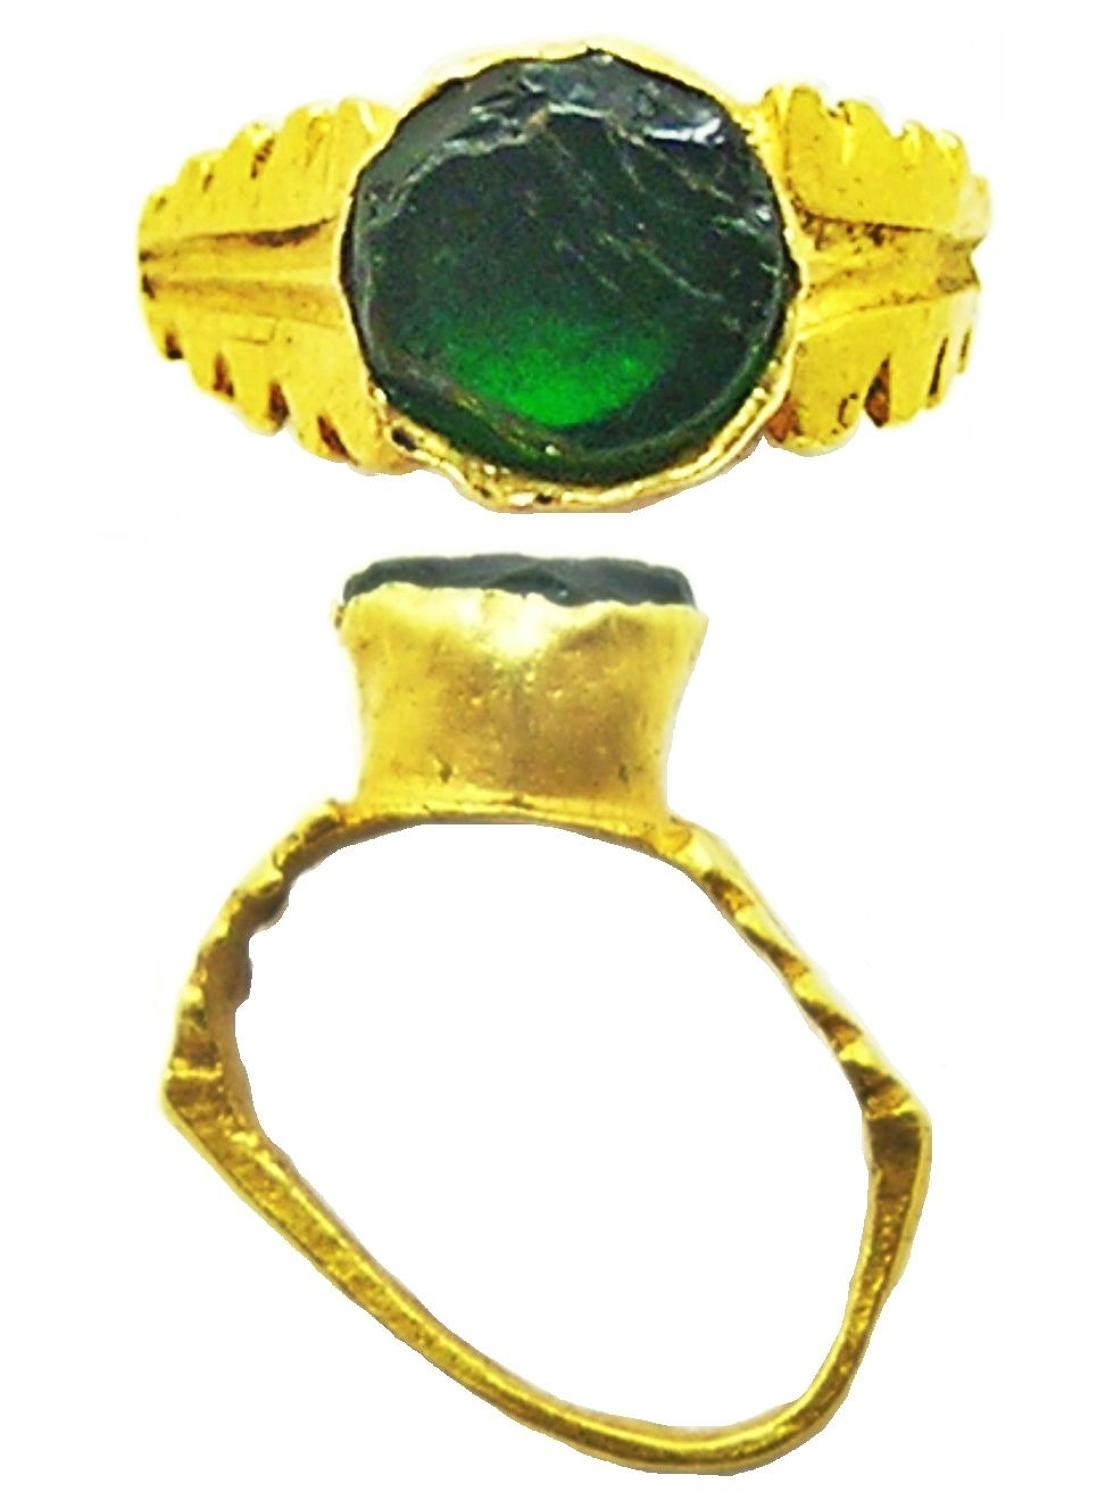 Ancient Roman Gold & Emerald Finger Ring for a Statue Votive offering